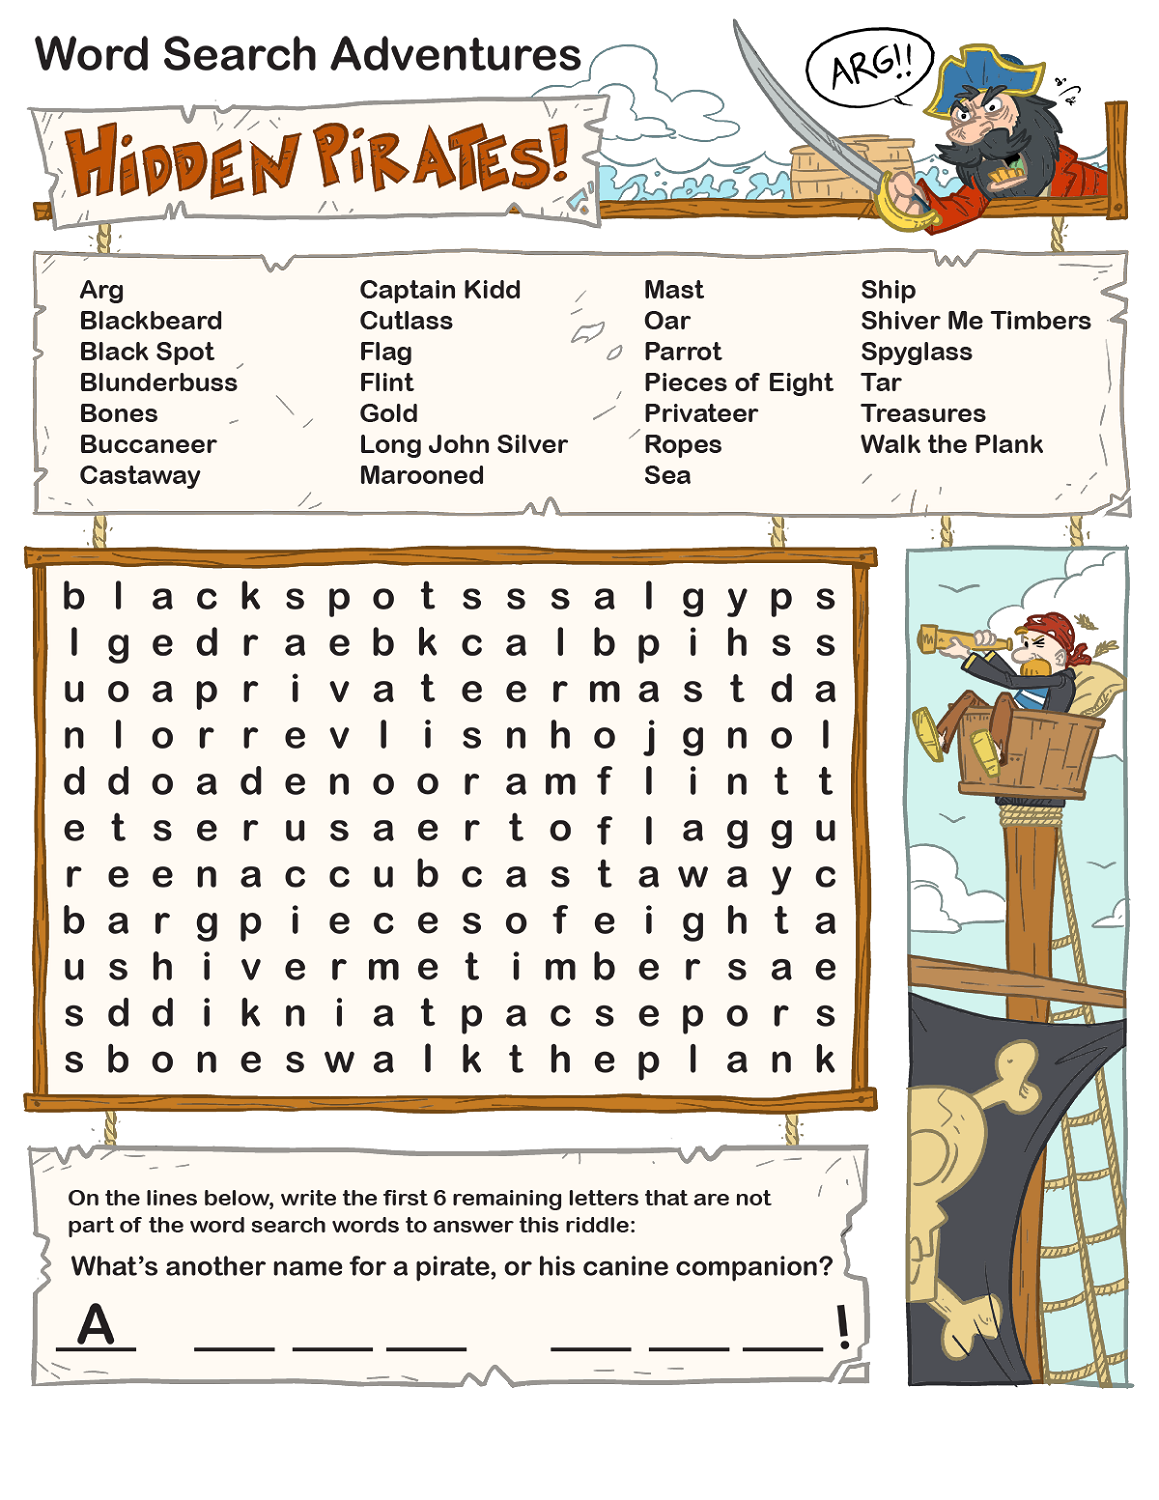 fun-word-searches-for-kids-pirates